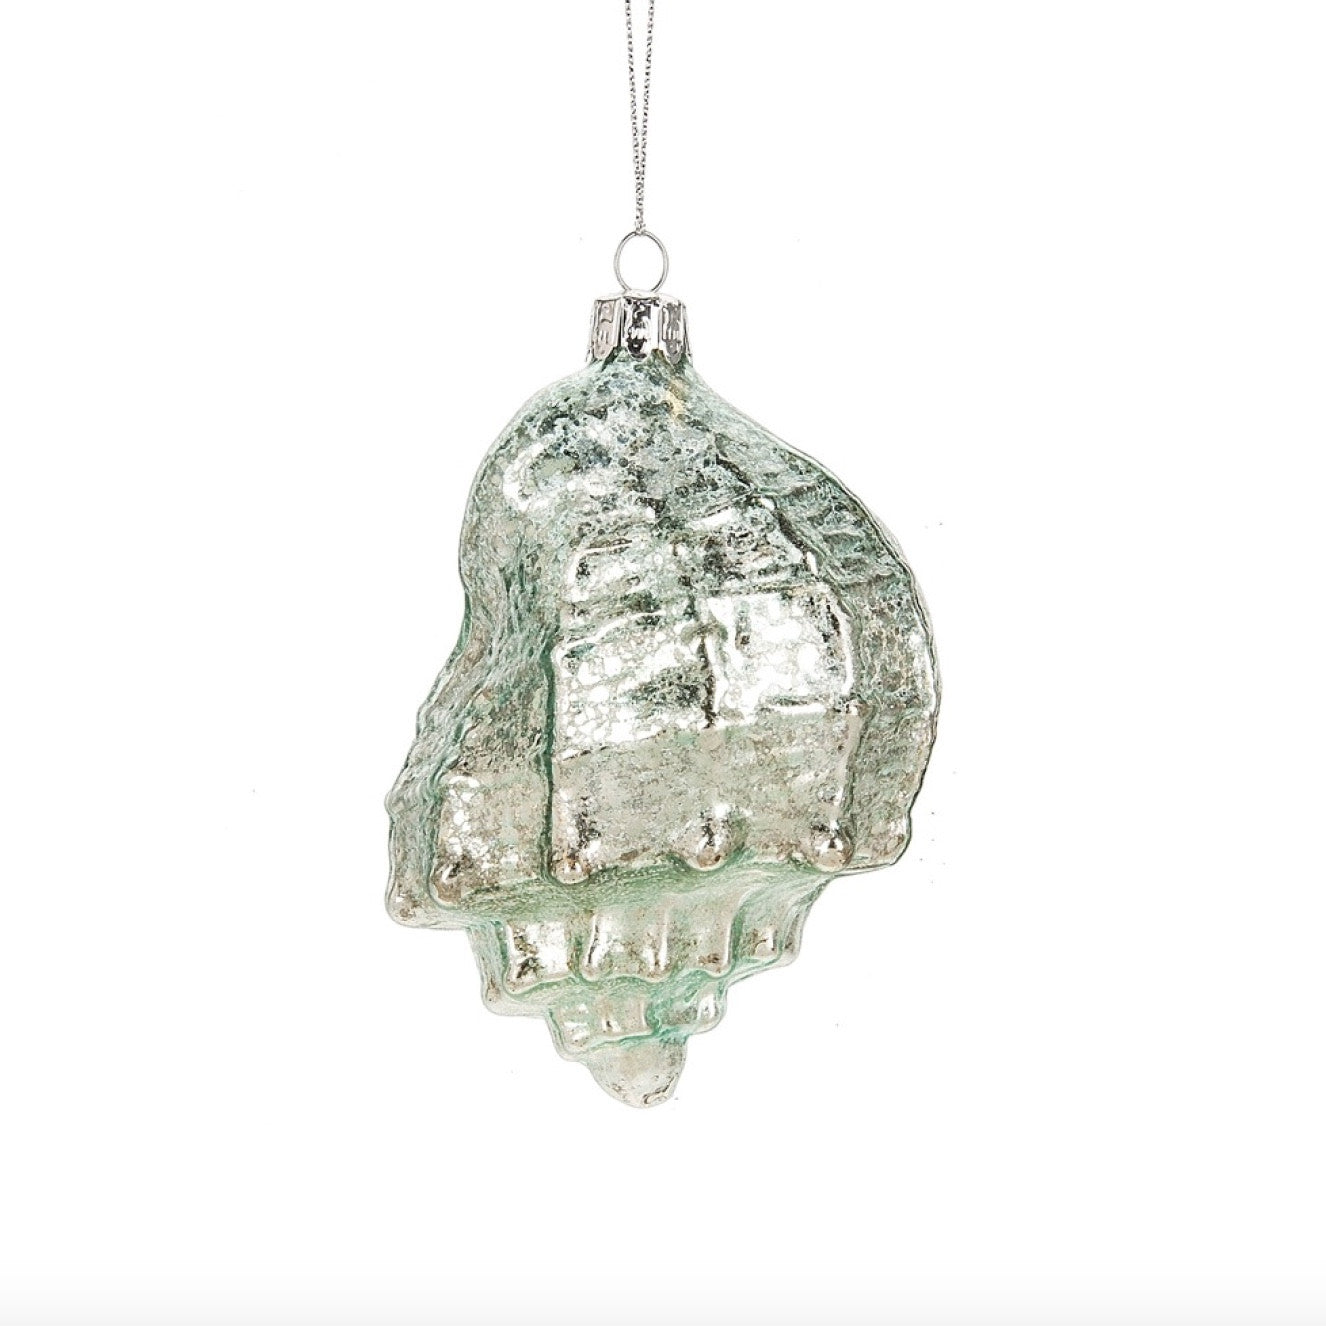 Aqua Mercury Shell Ornament